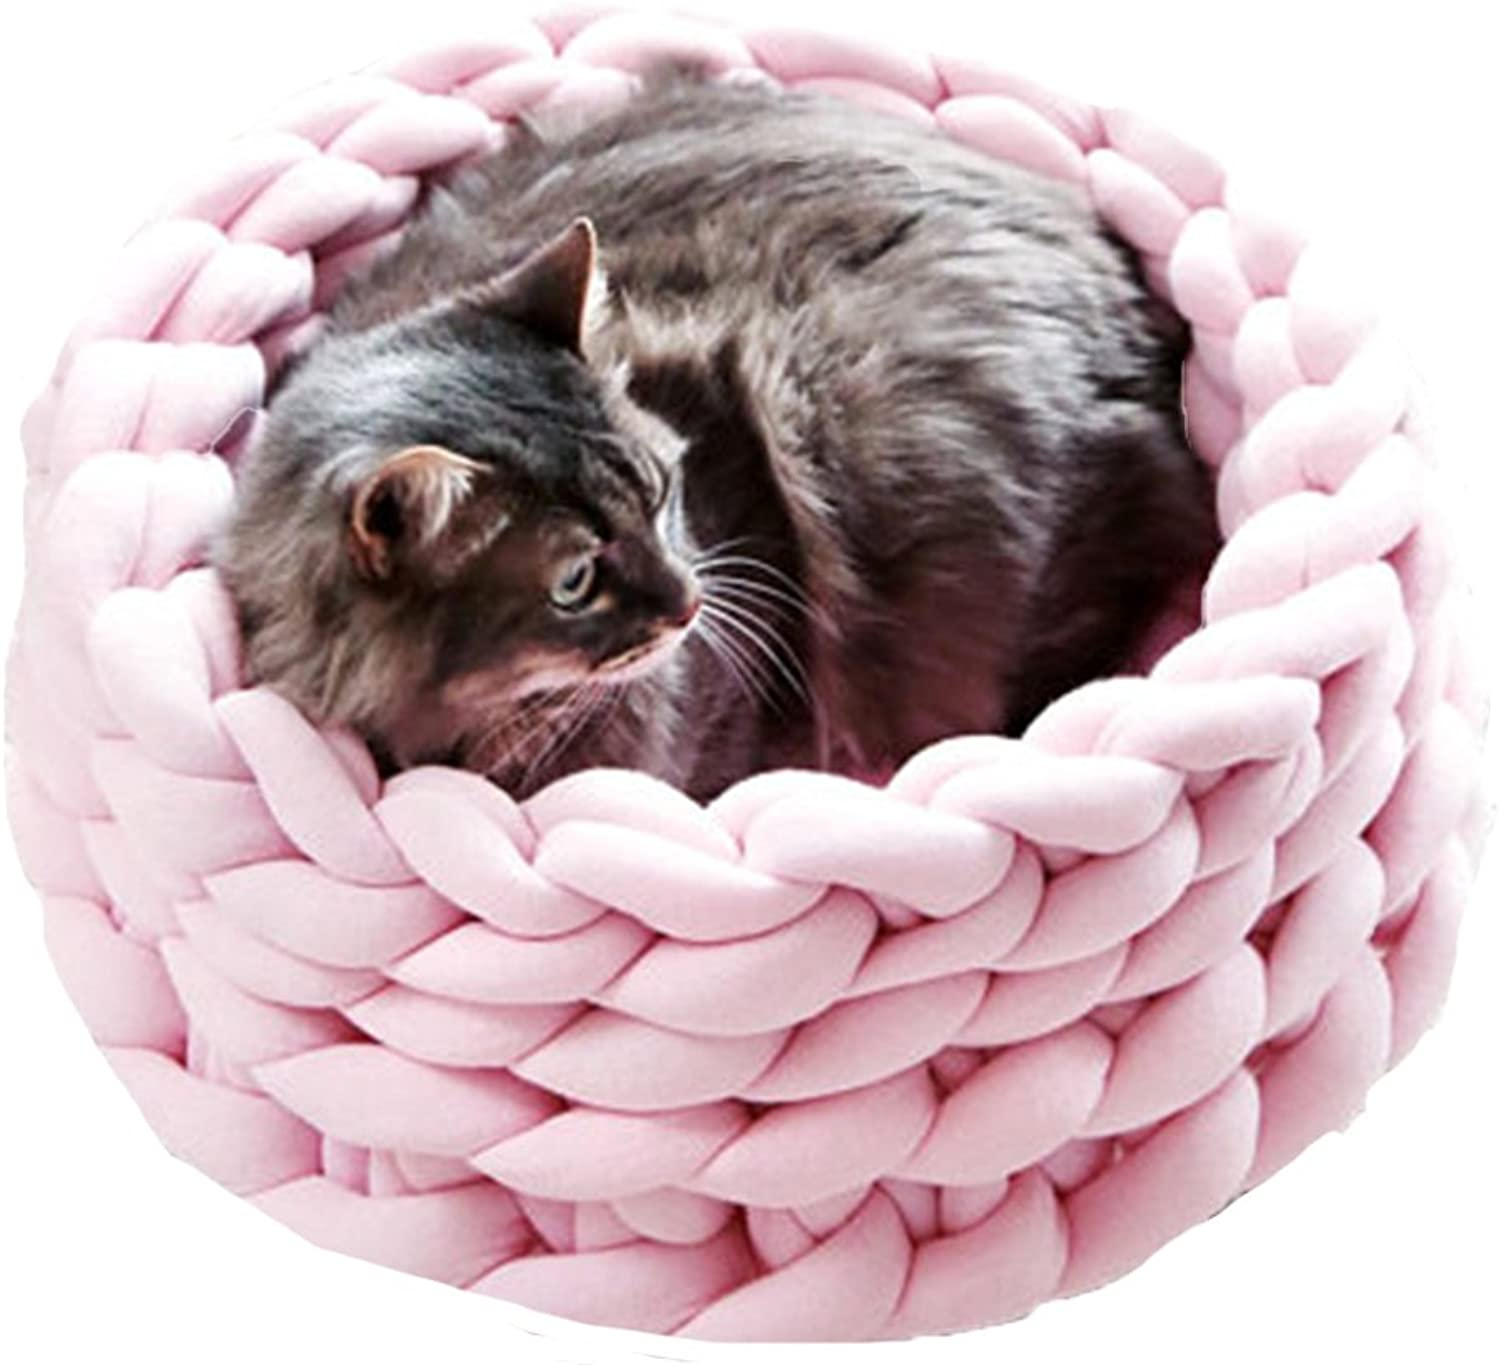 Braid Cat Cave Handmade Cozy Kitten Bed Chunky Knitting Pet Bed Light Pink Kitty House Diameter 14 inch